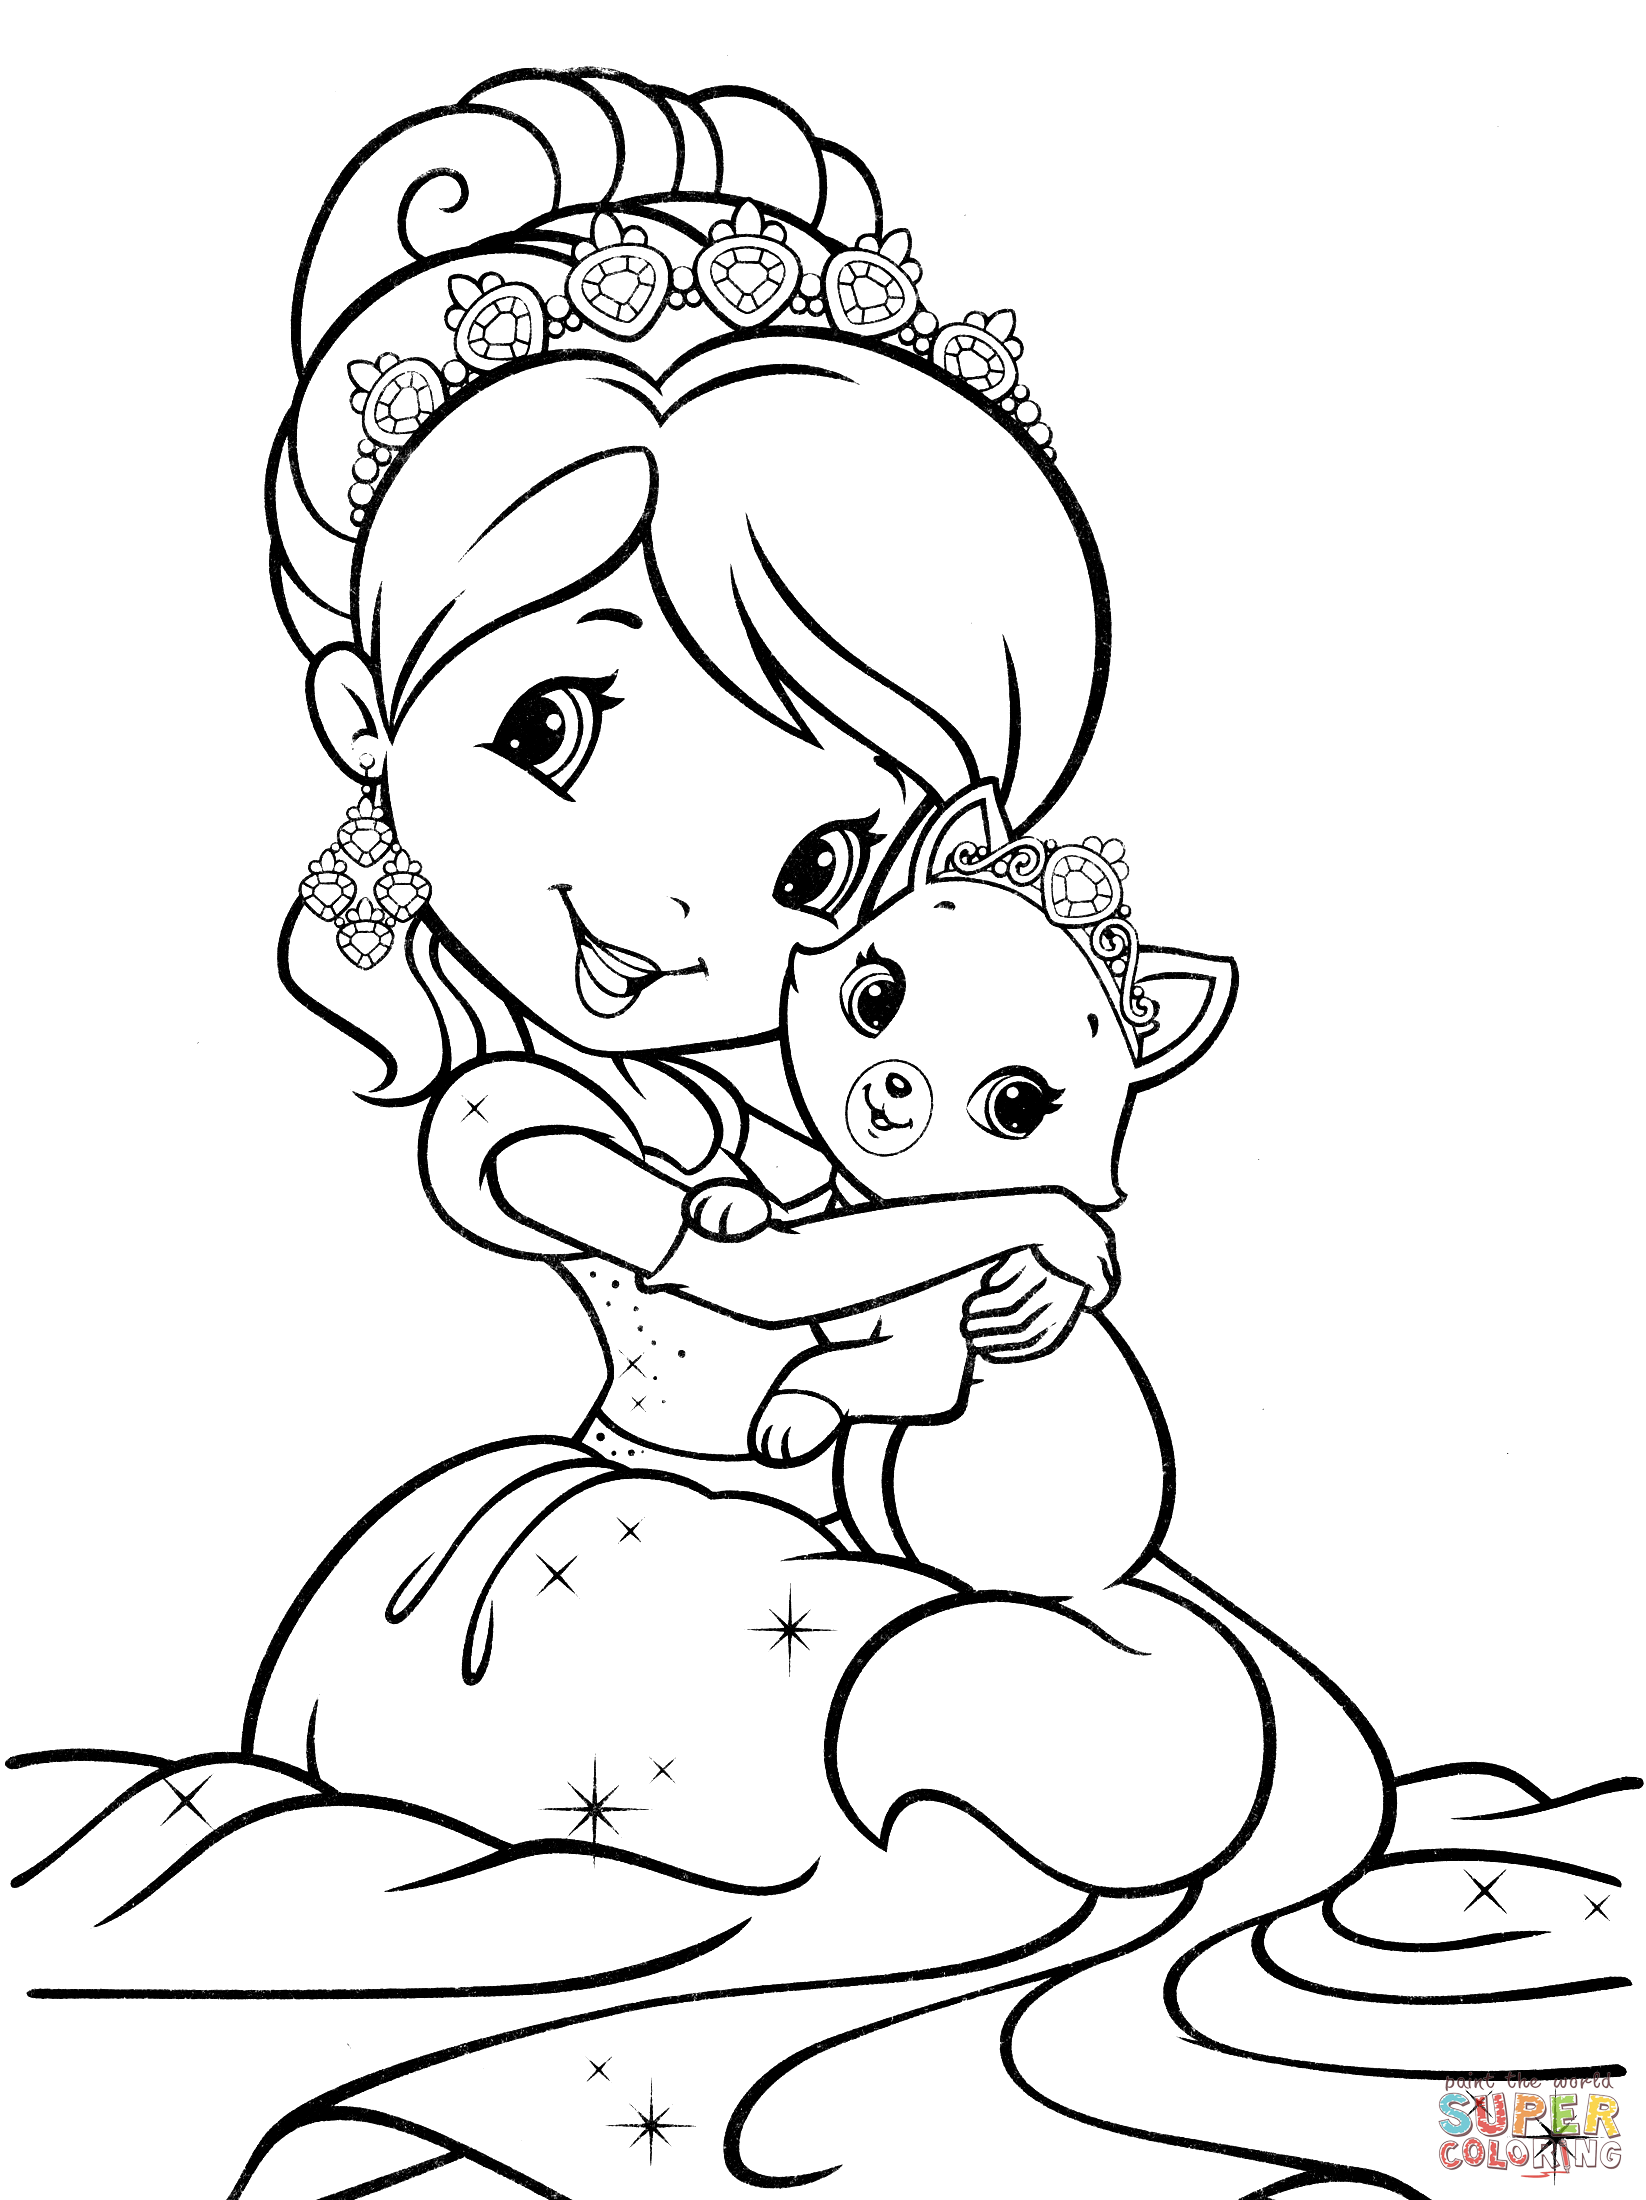 Strawberry Shortcake Mermaid Coloring Page Free Printable Coloring Pages